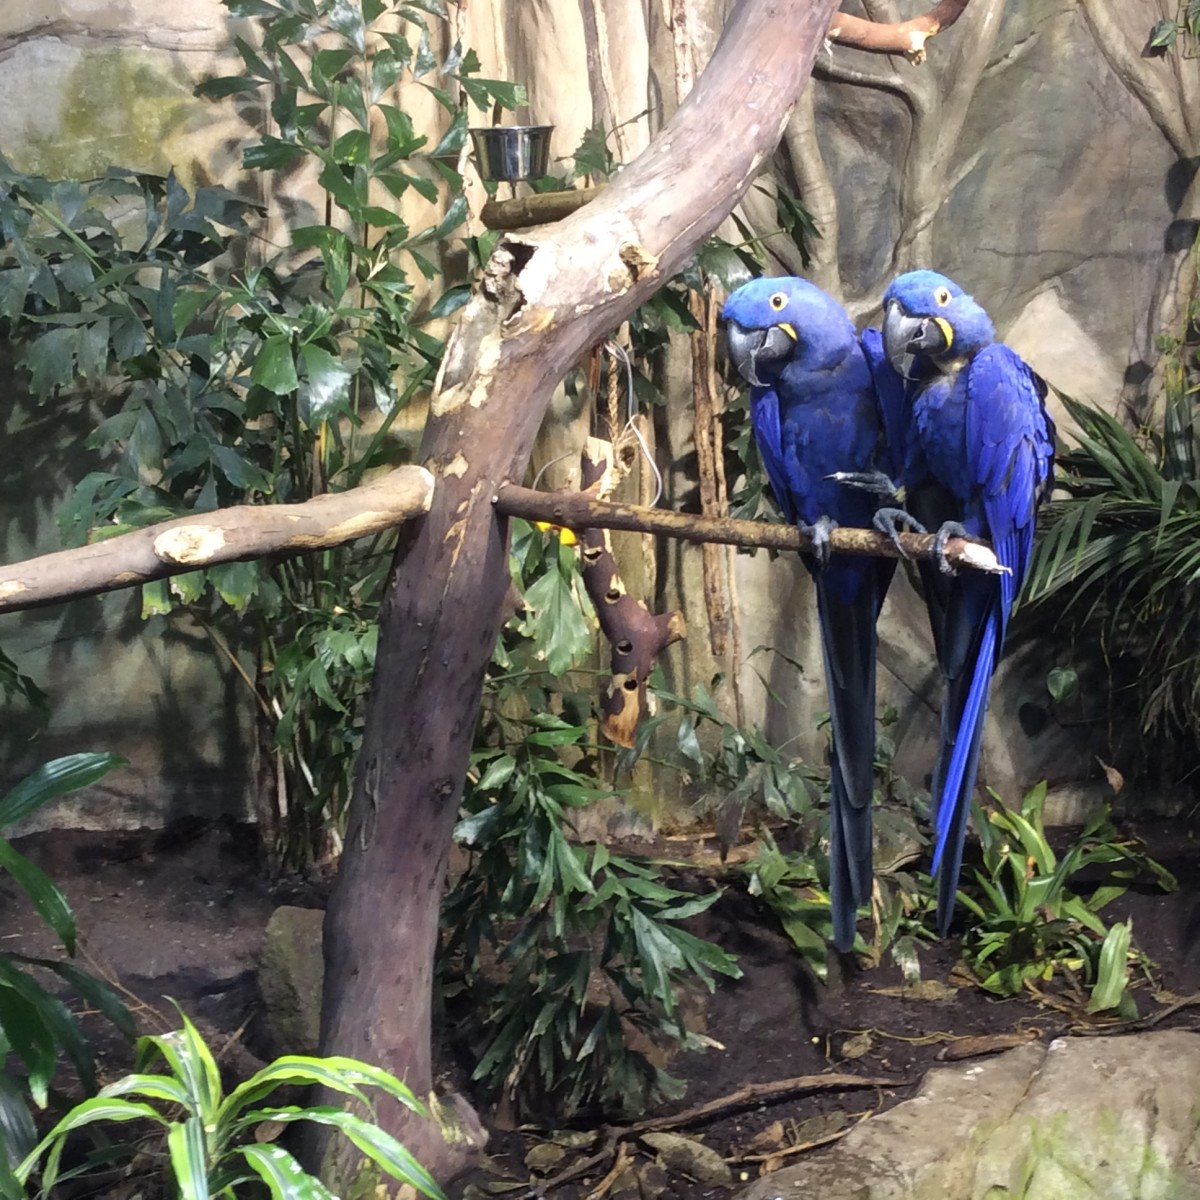 Hyacinth macaws (Anodorhynchus hyacinthinus) at the Vancouver Aquarium